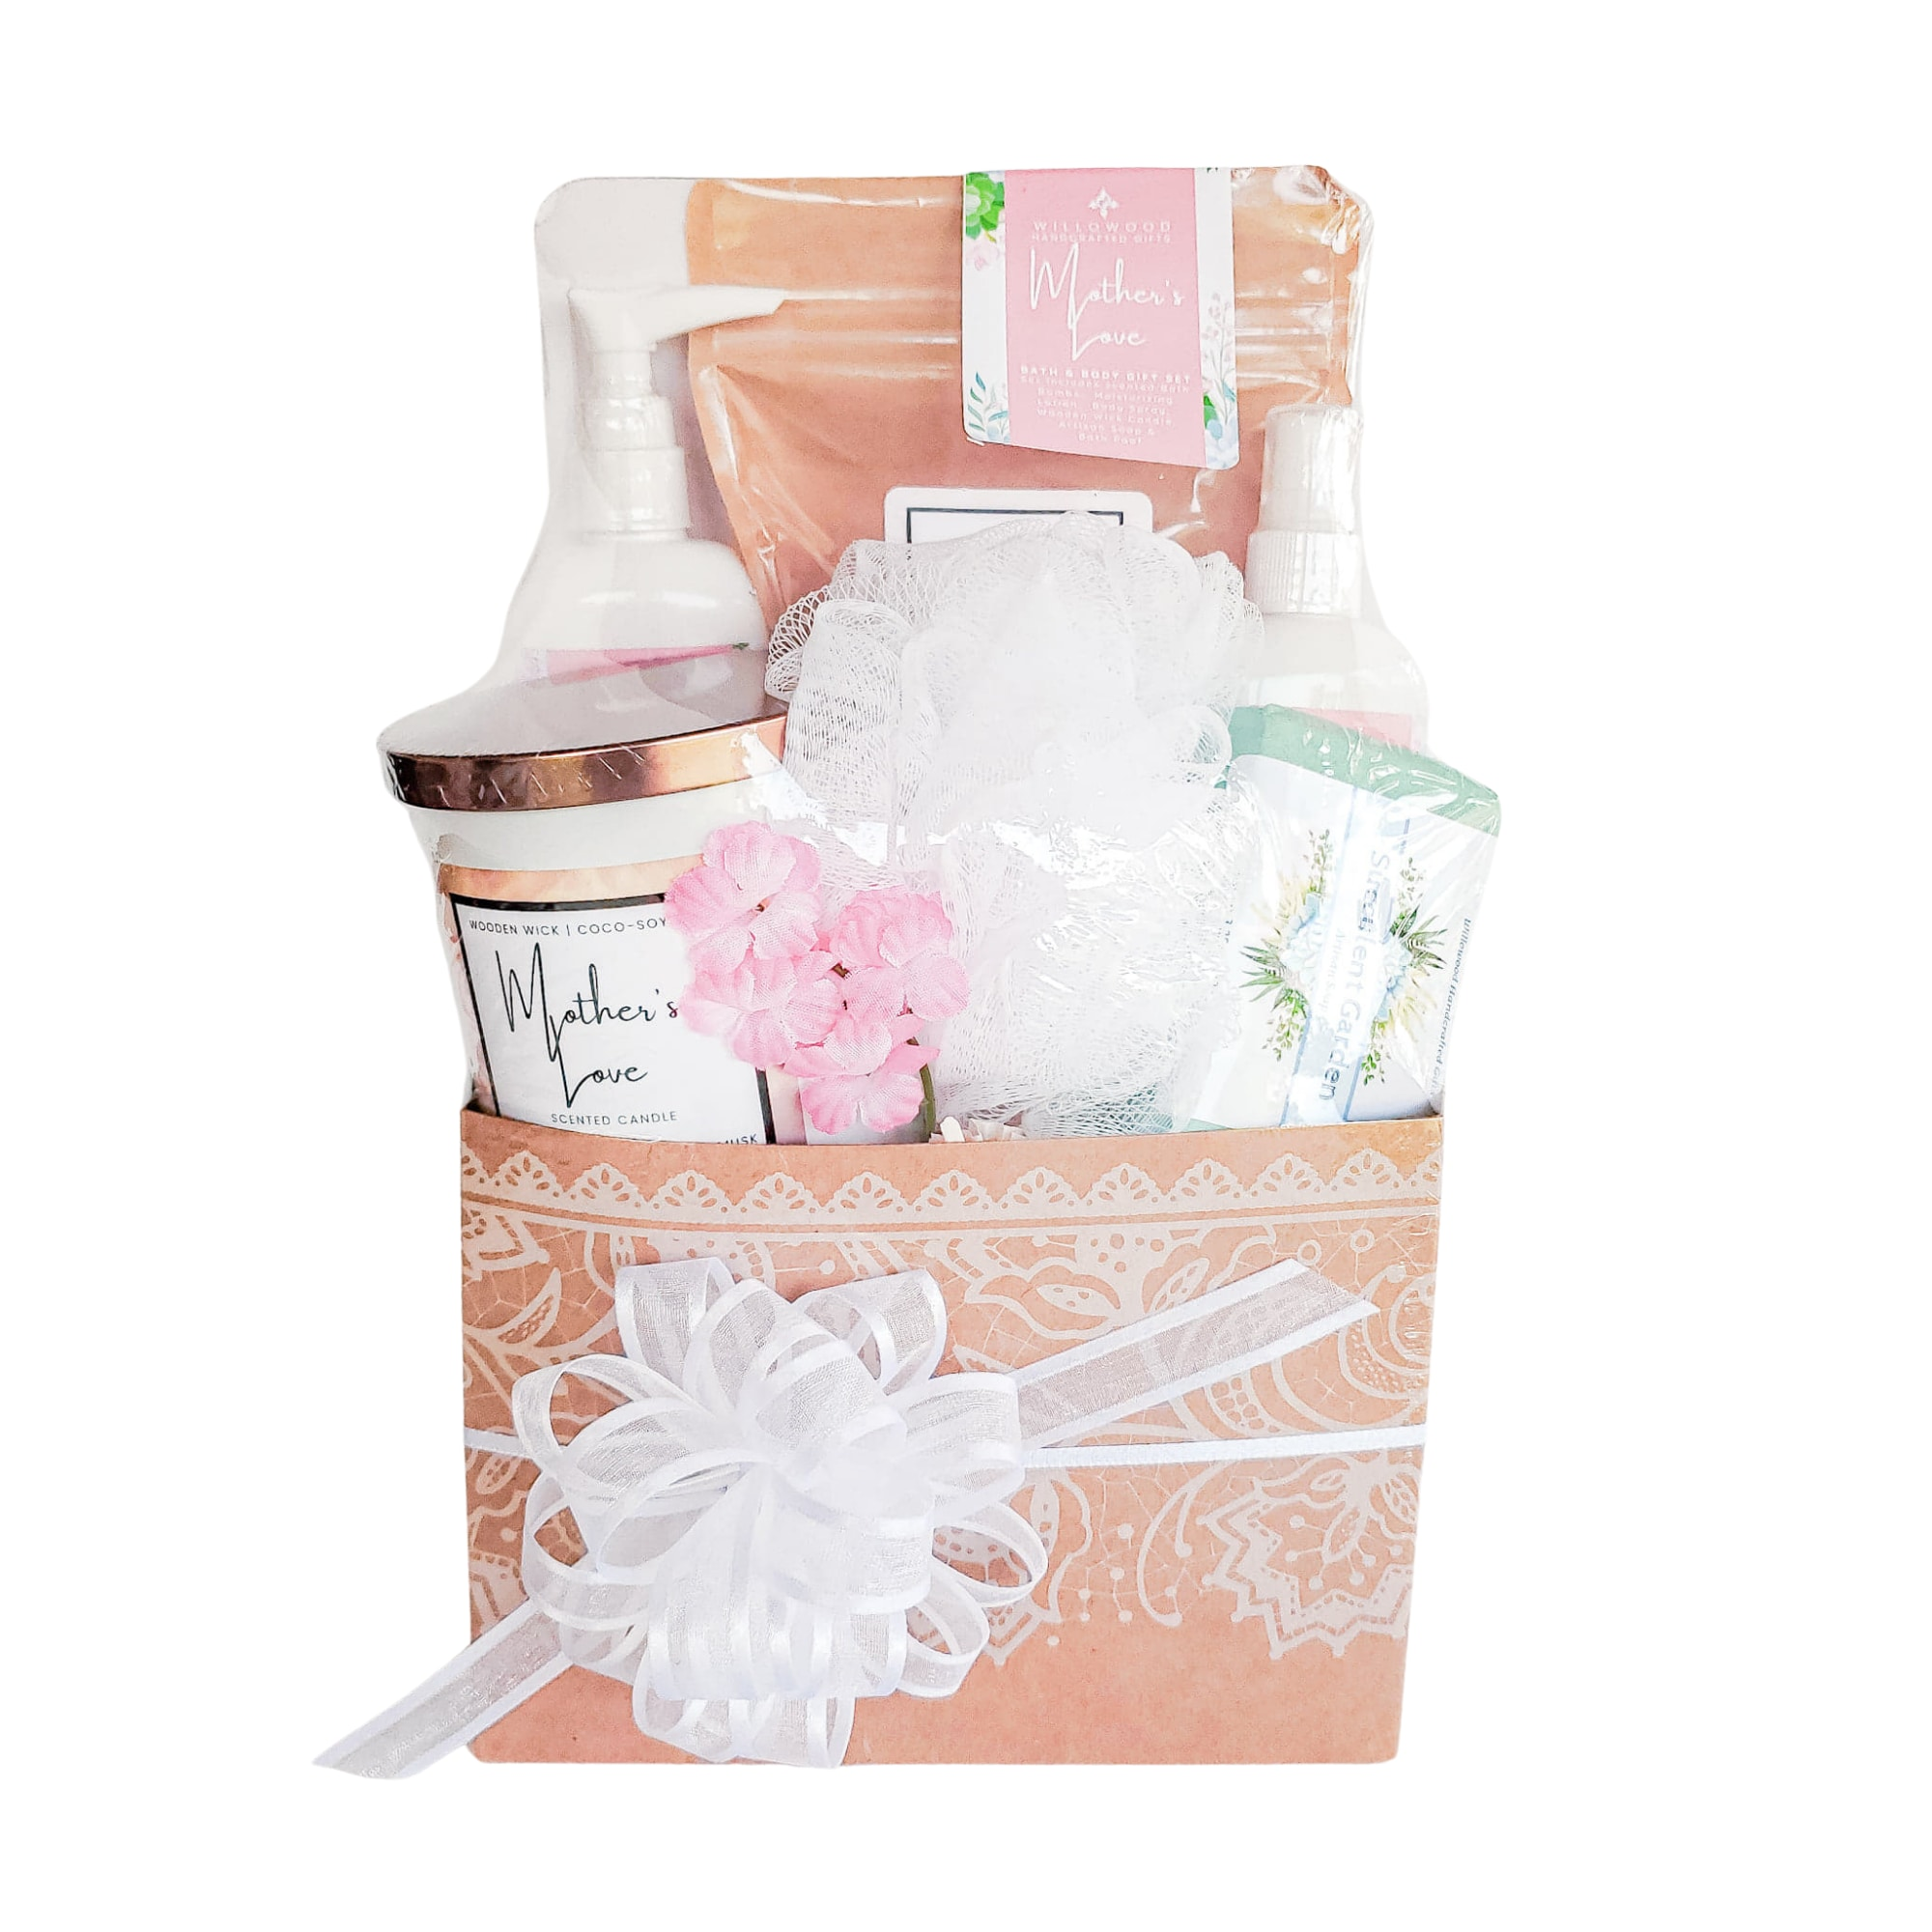 Willowood Bath and Body Set